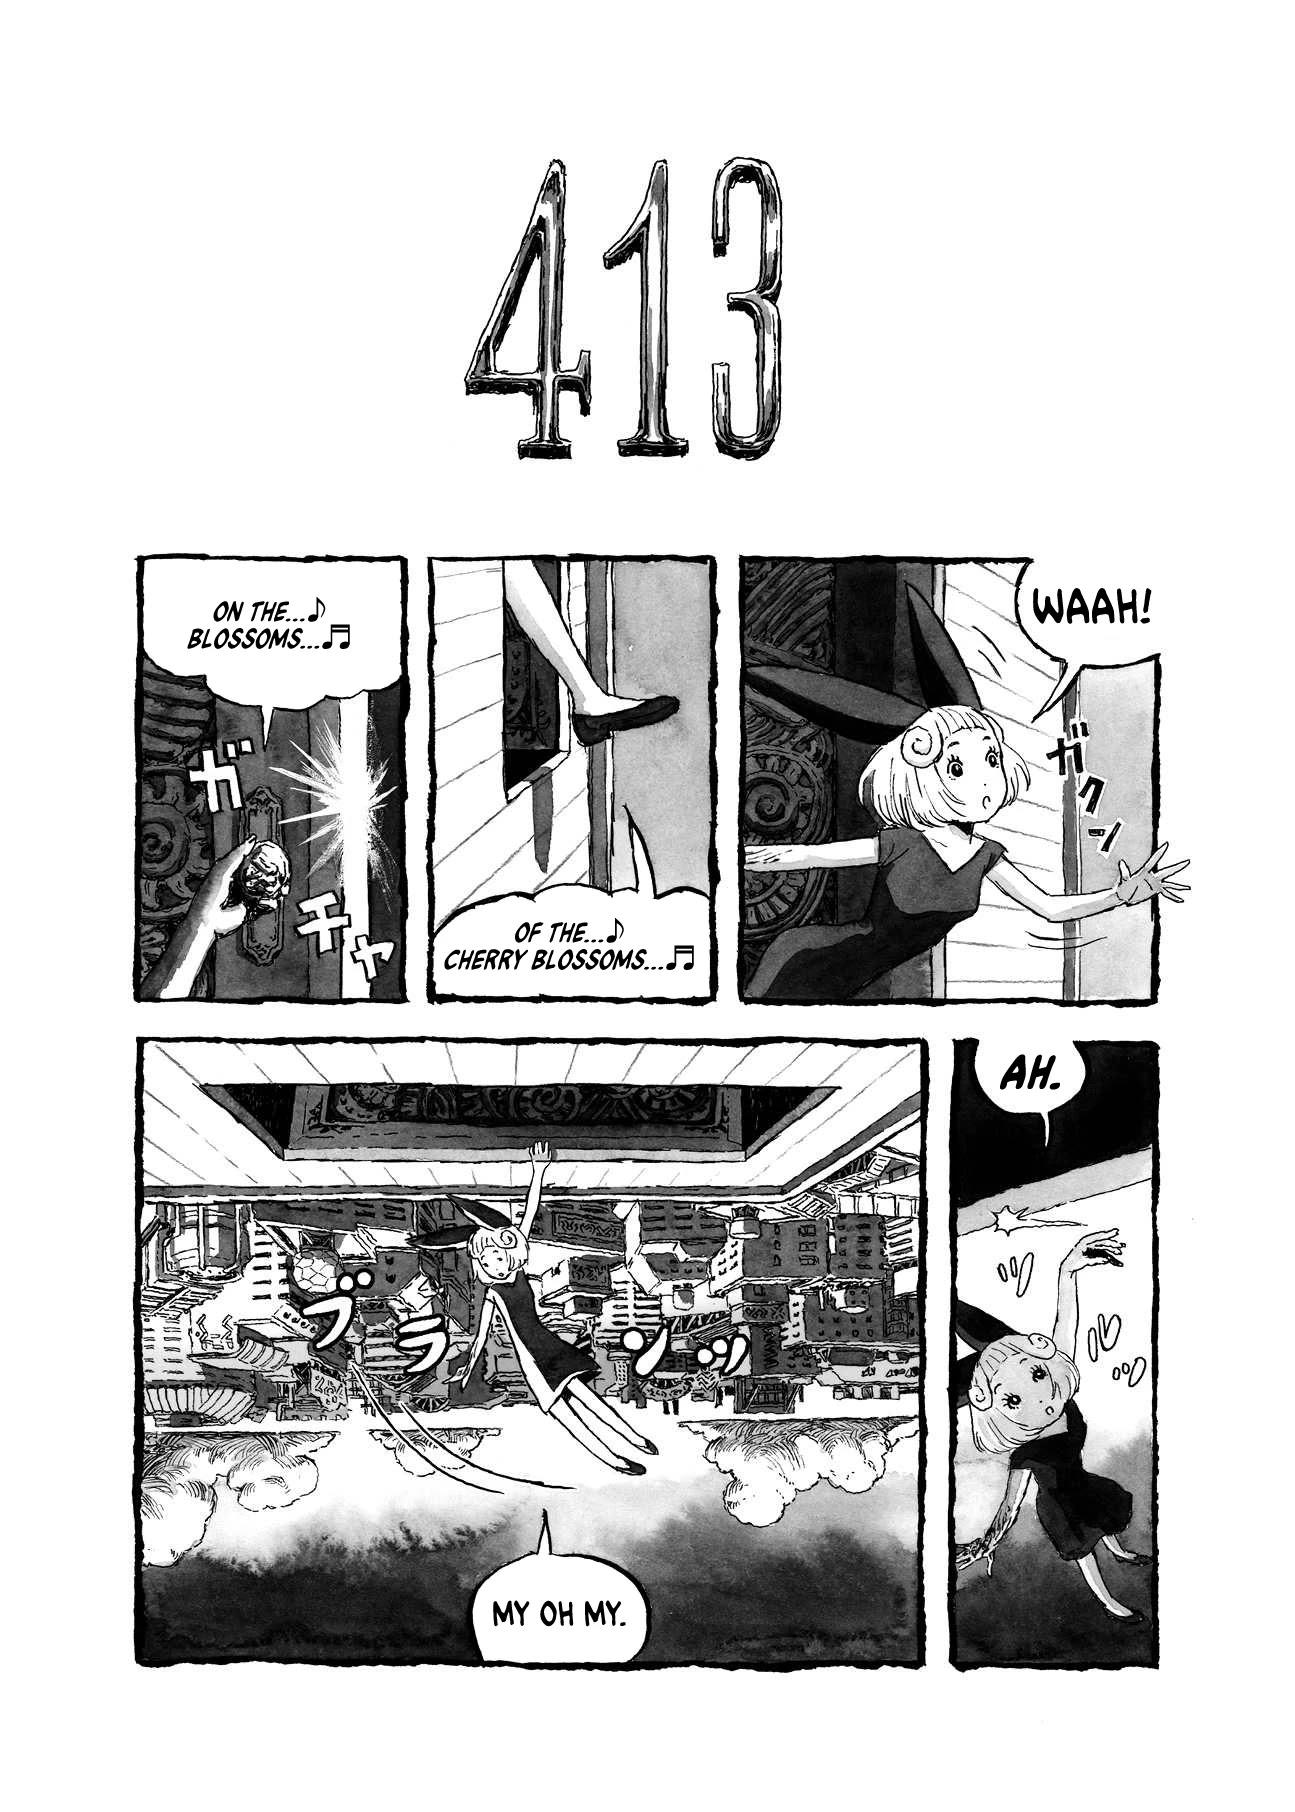 Bibliomania Chapter 3: The Bird Of Room 413 And The Hero Of Room 385 page 3 - Mangakakalots.com